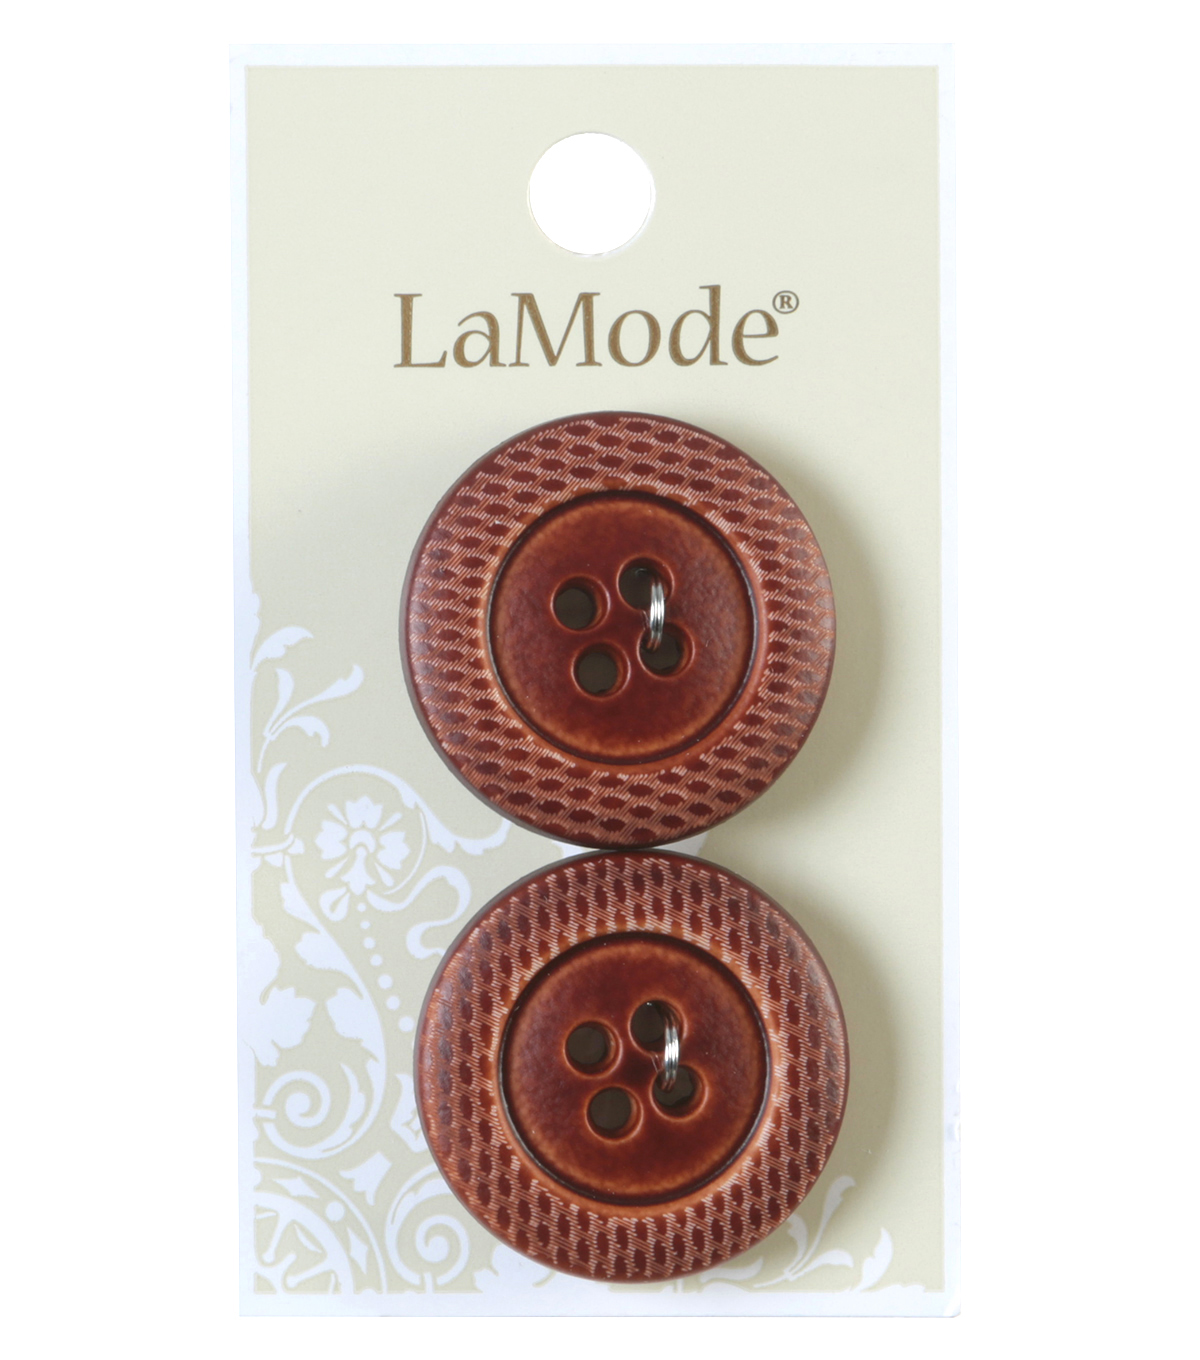 LaMode 4 Hole Brown Ribbed Button 28mm